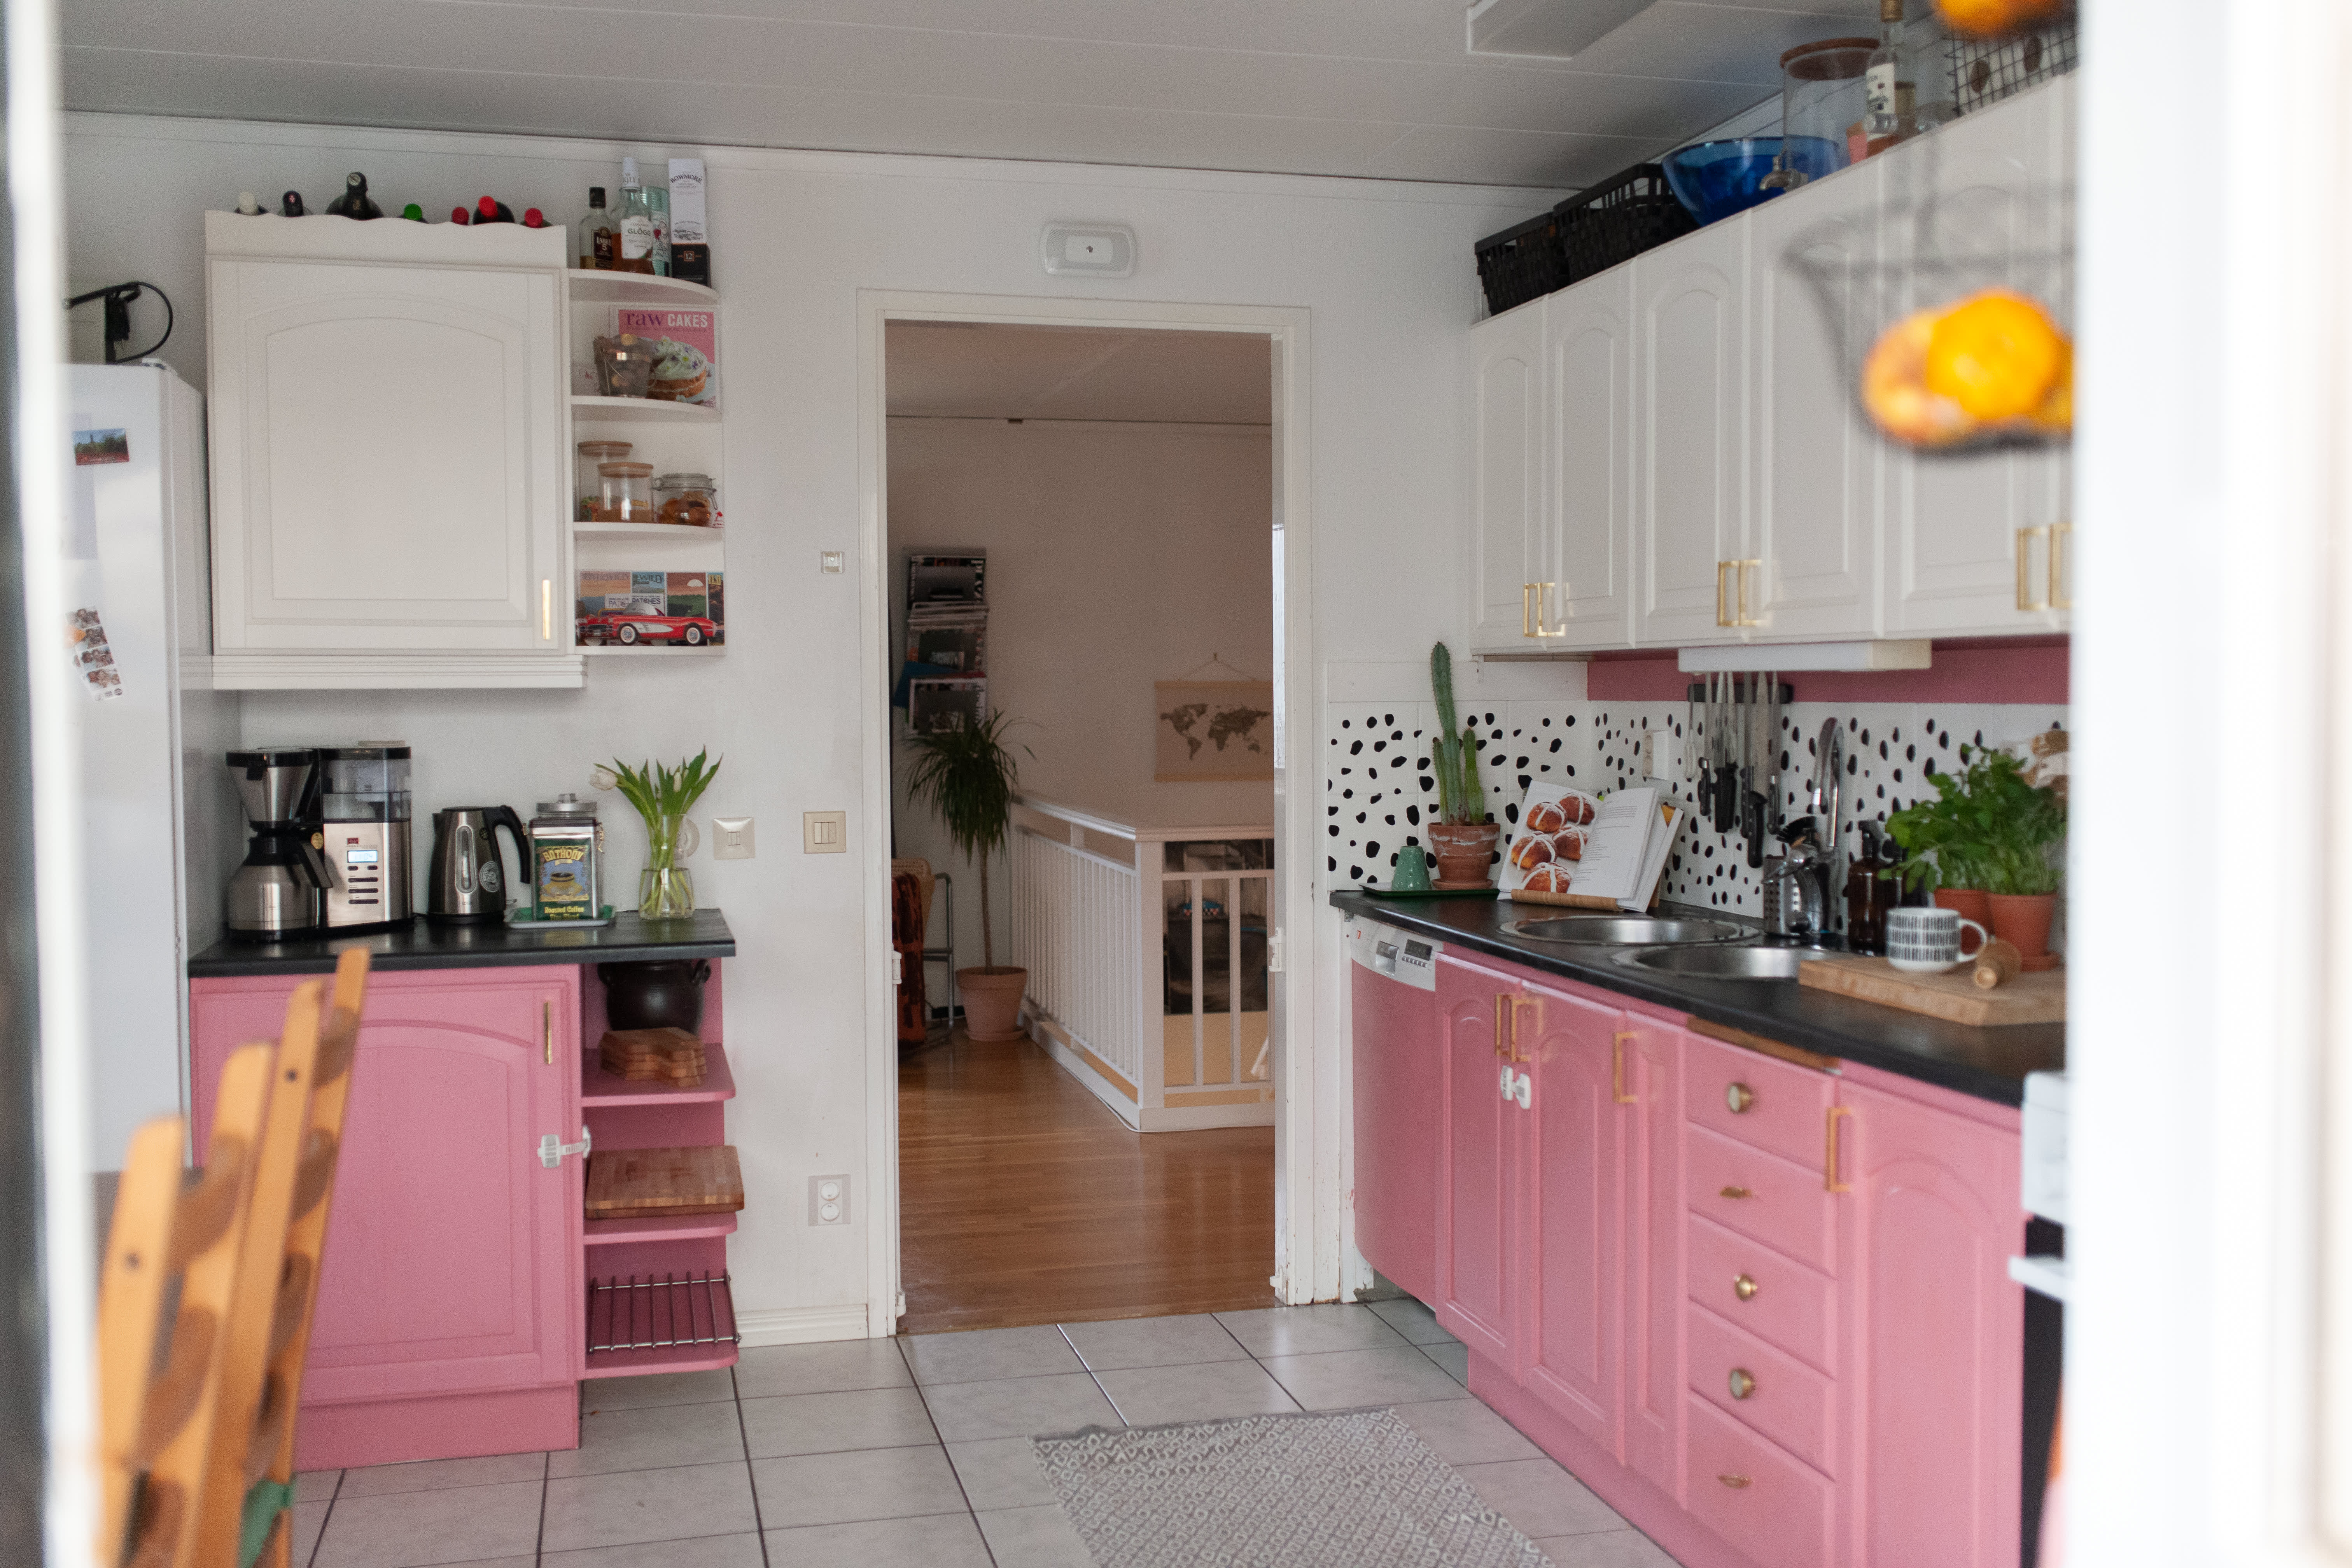 1d9af88fab93 A Fun Swedish Home Has a Pink Kitchen and an Indoor Skate Ramp: gallery  image